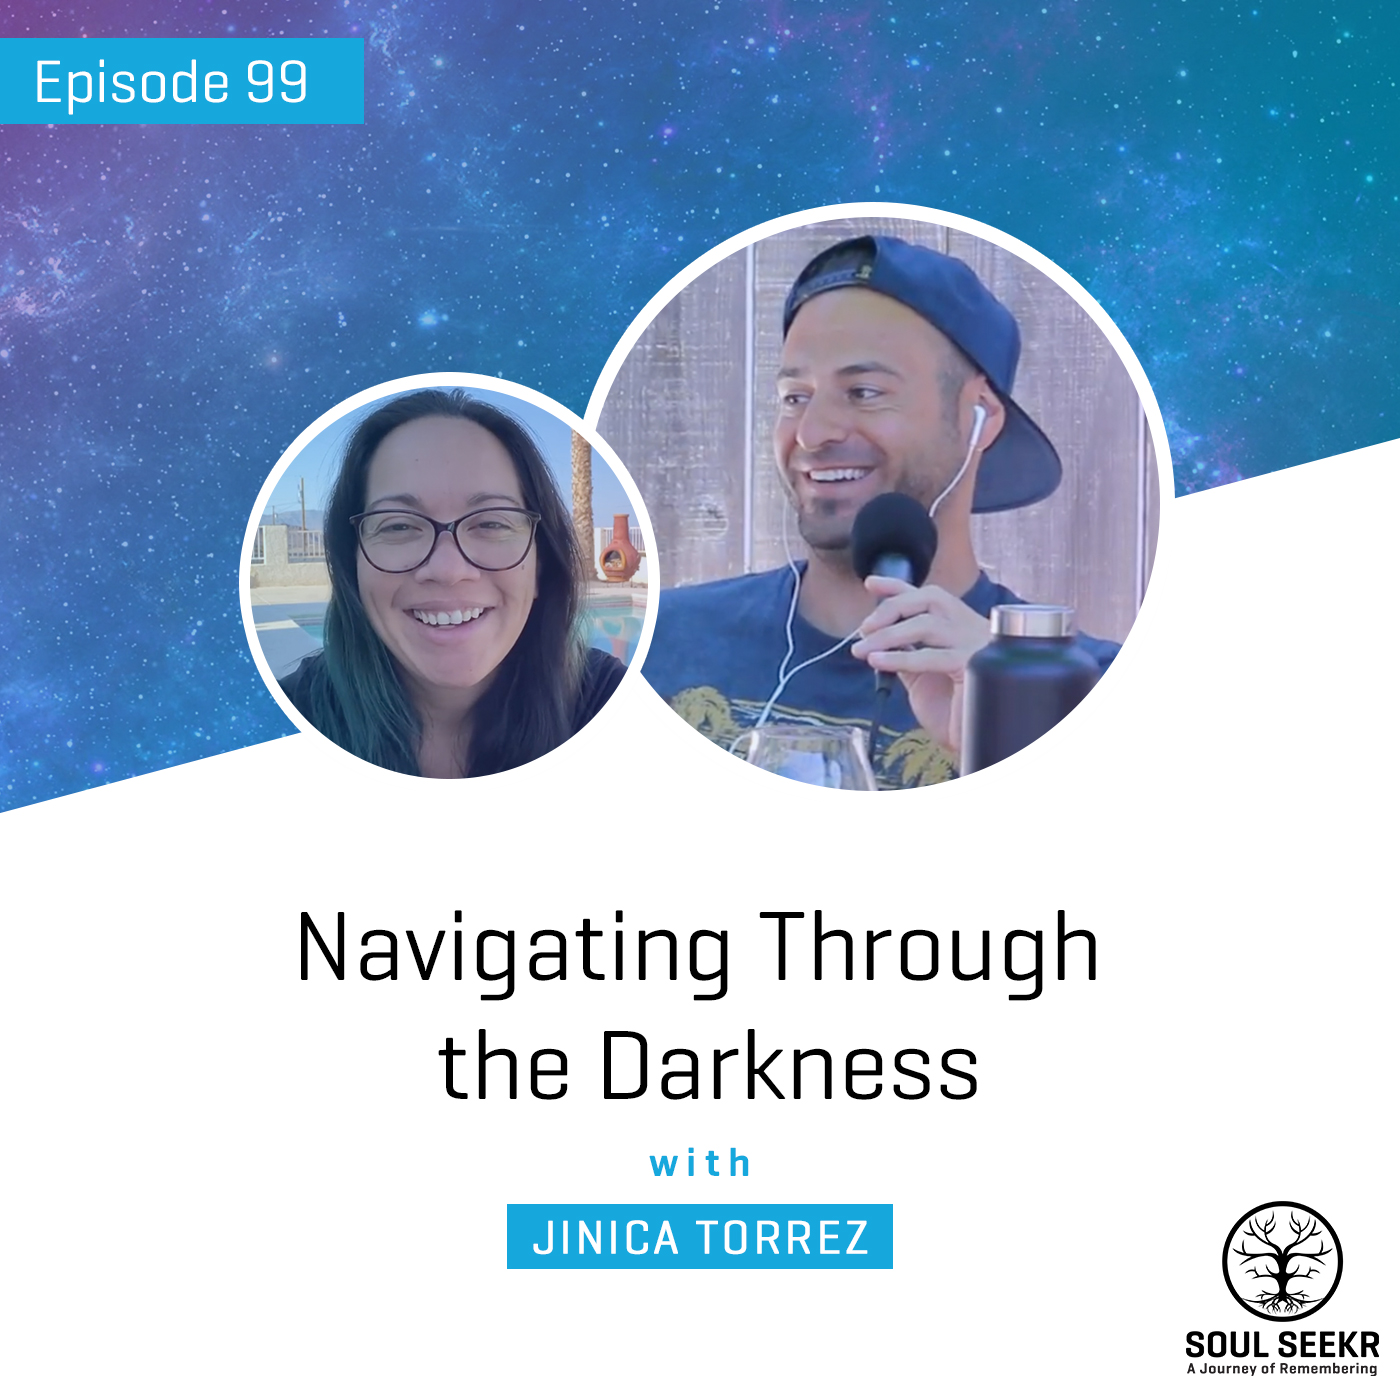 #99: Navigating Through the Darkness with Jinica Torrez